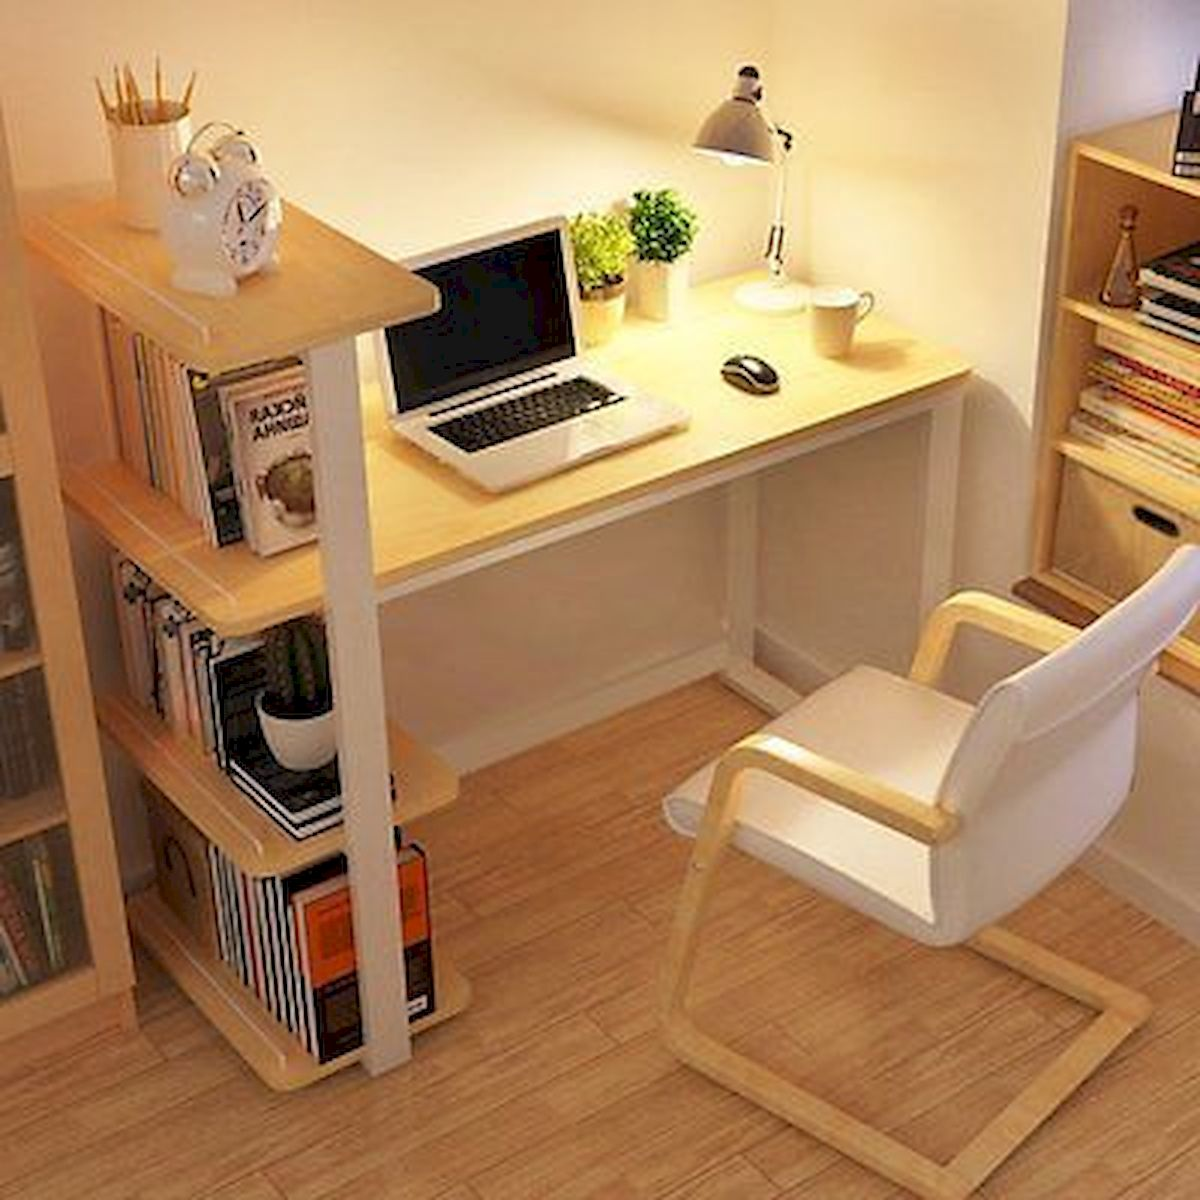 54 Wonderful DIY Computer Desk Design Ideas and Decor (7)